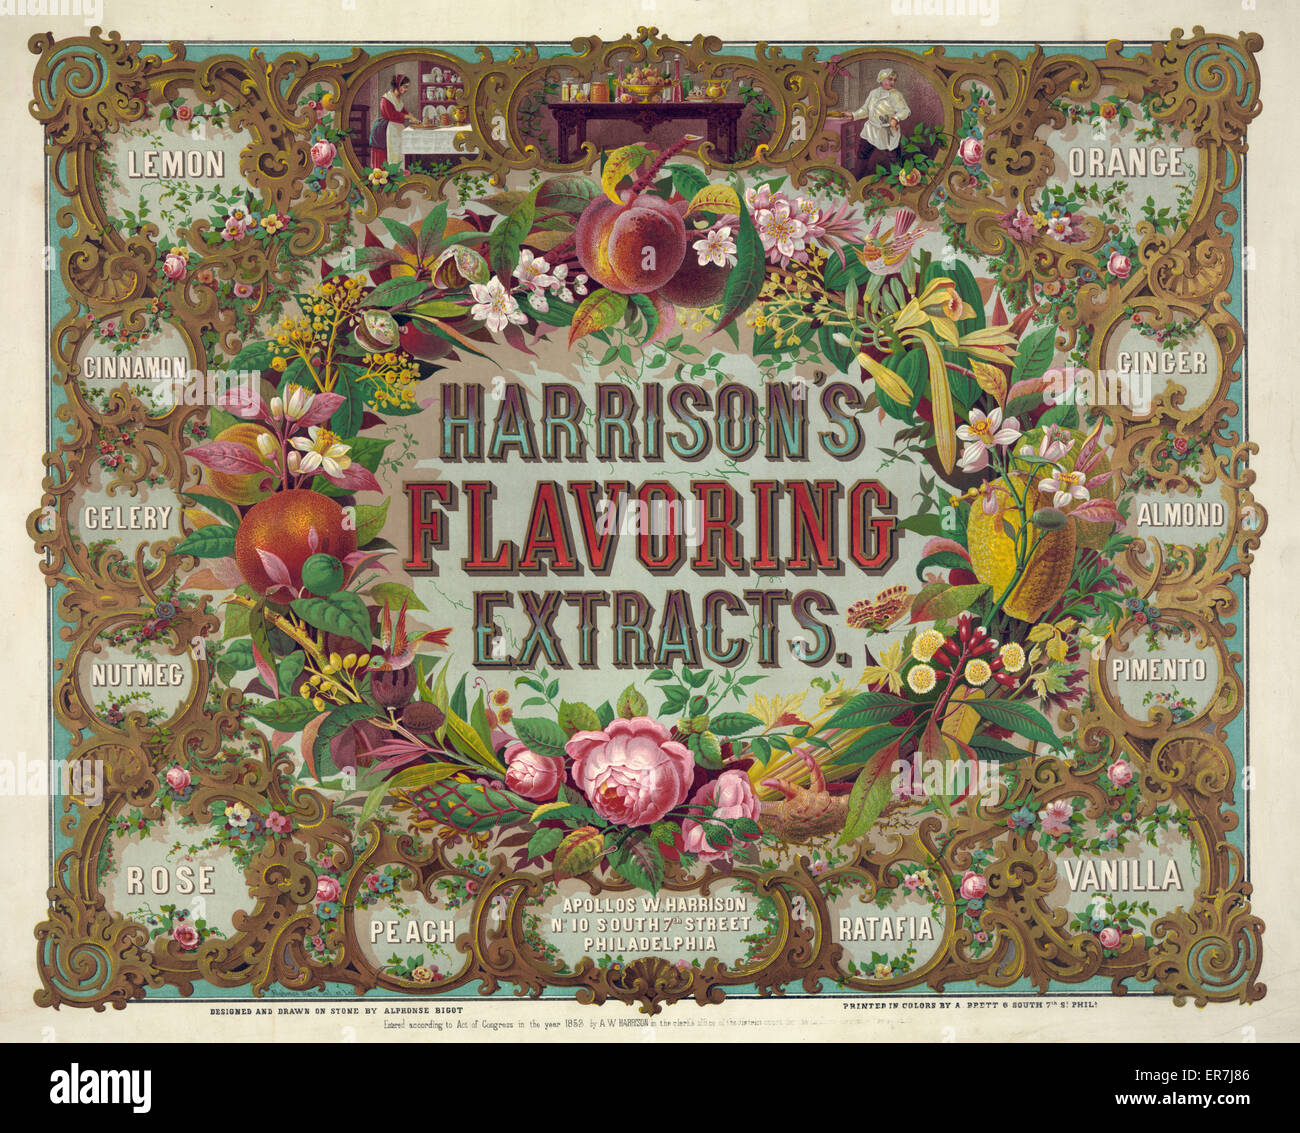 Harrison's flavoring extracts. Phila. Date c1868. - Stock Image